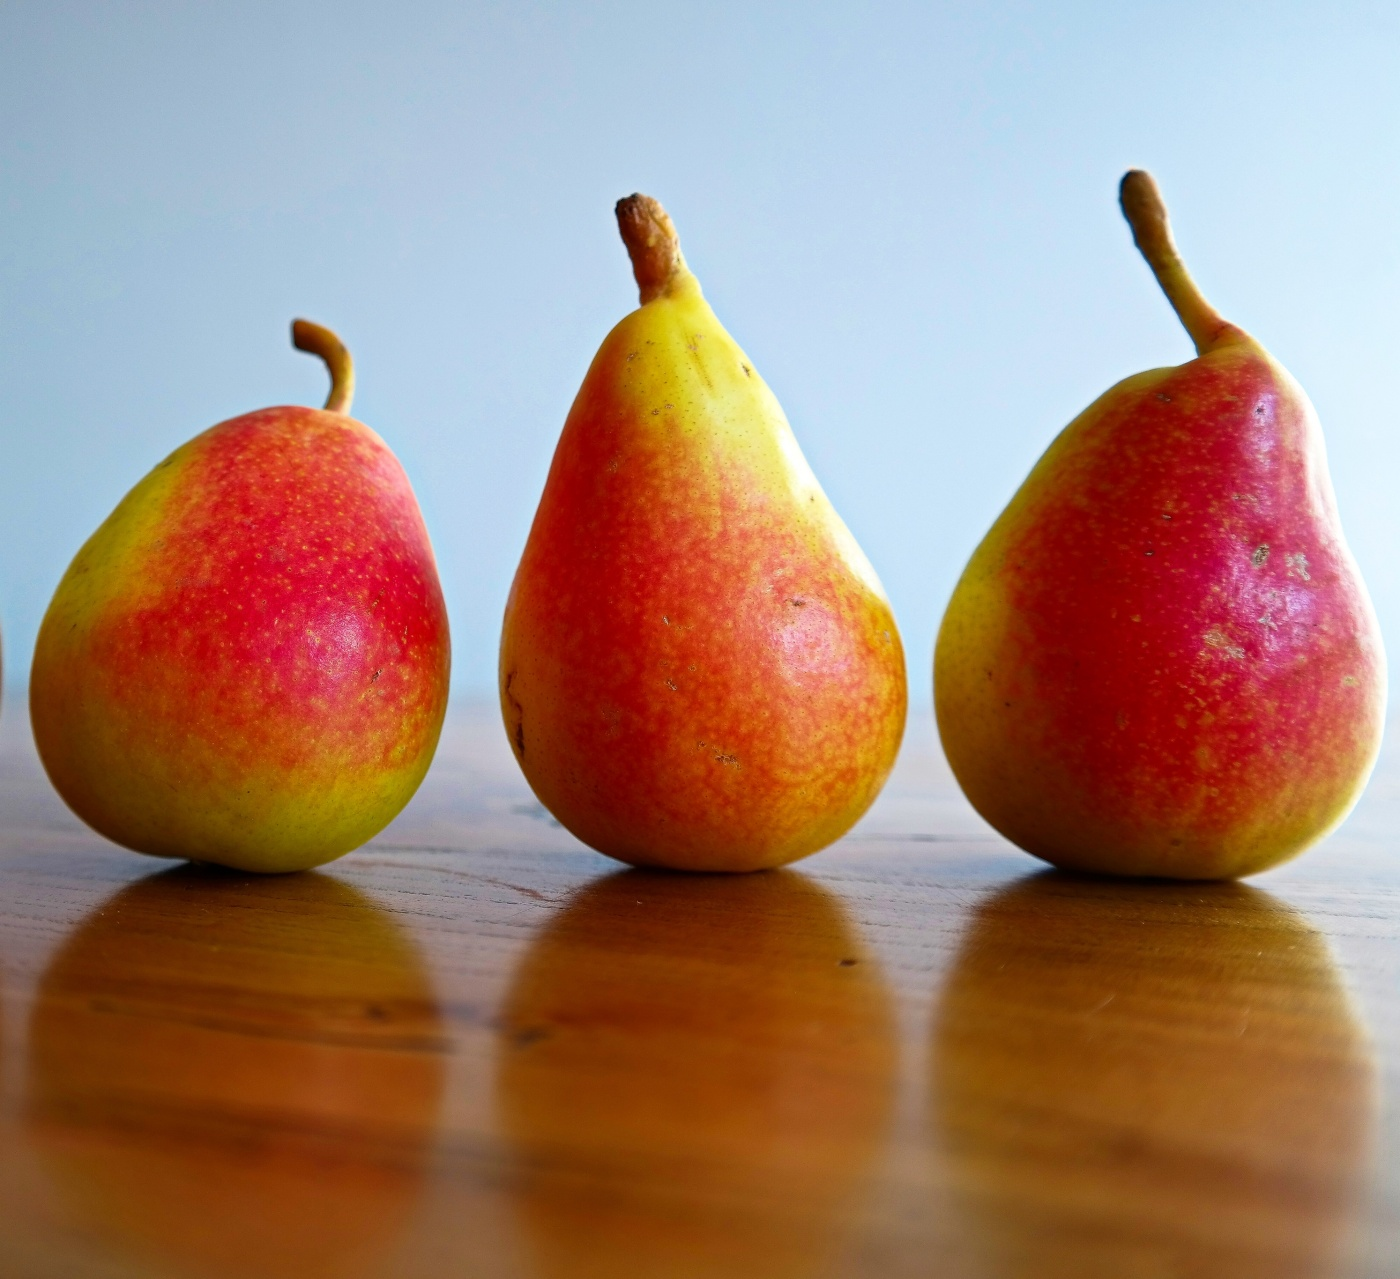 Ercolini pears from Jumilla Spain www.avarietyoffruits.com